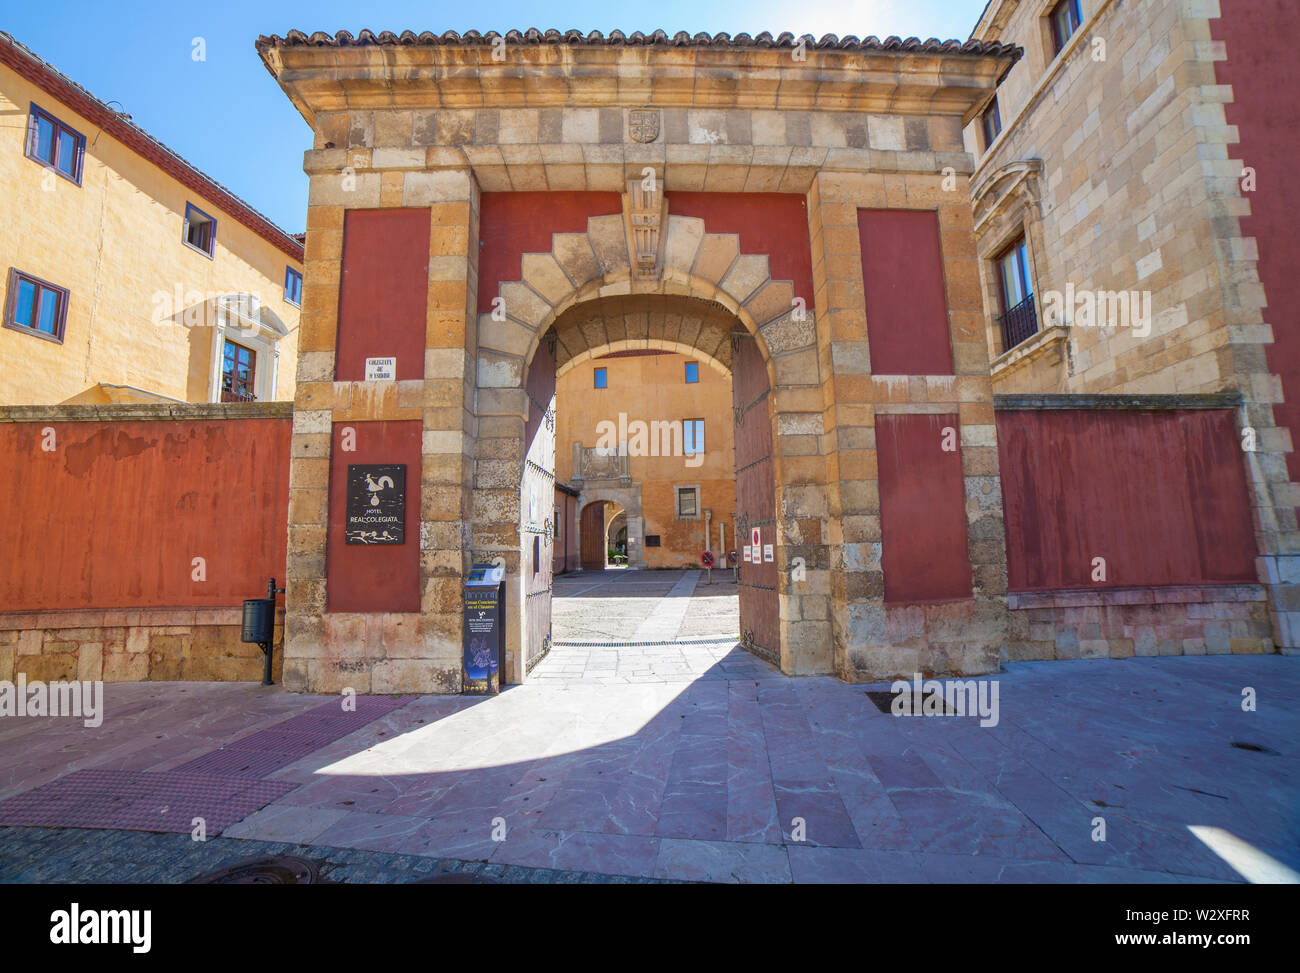 Leon, Spain - June 25th, 2019:  Collegiate of San Isidoro, León, Spain. Main Entrance - Stock Image